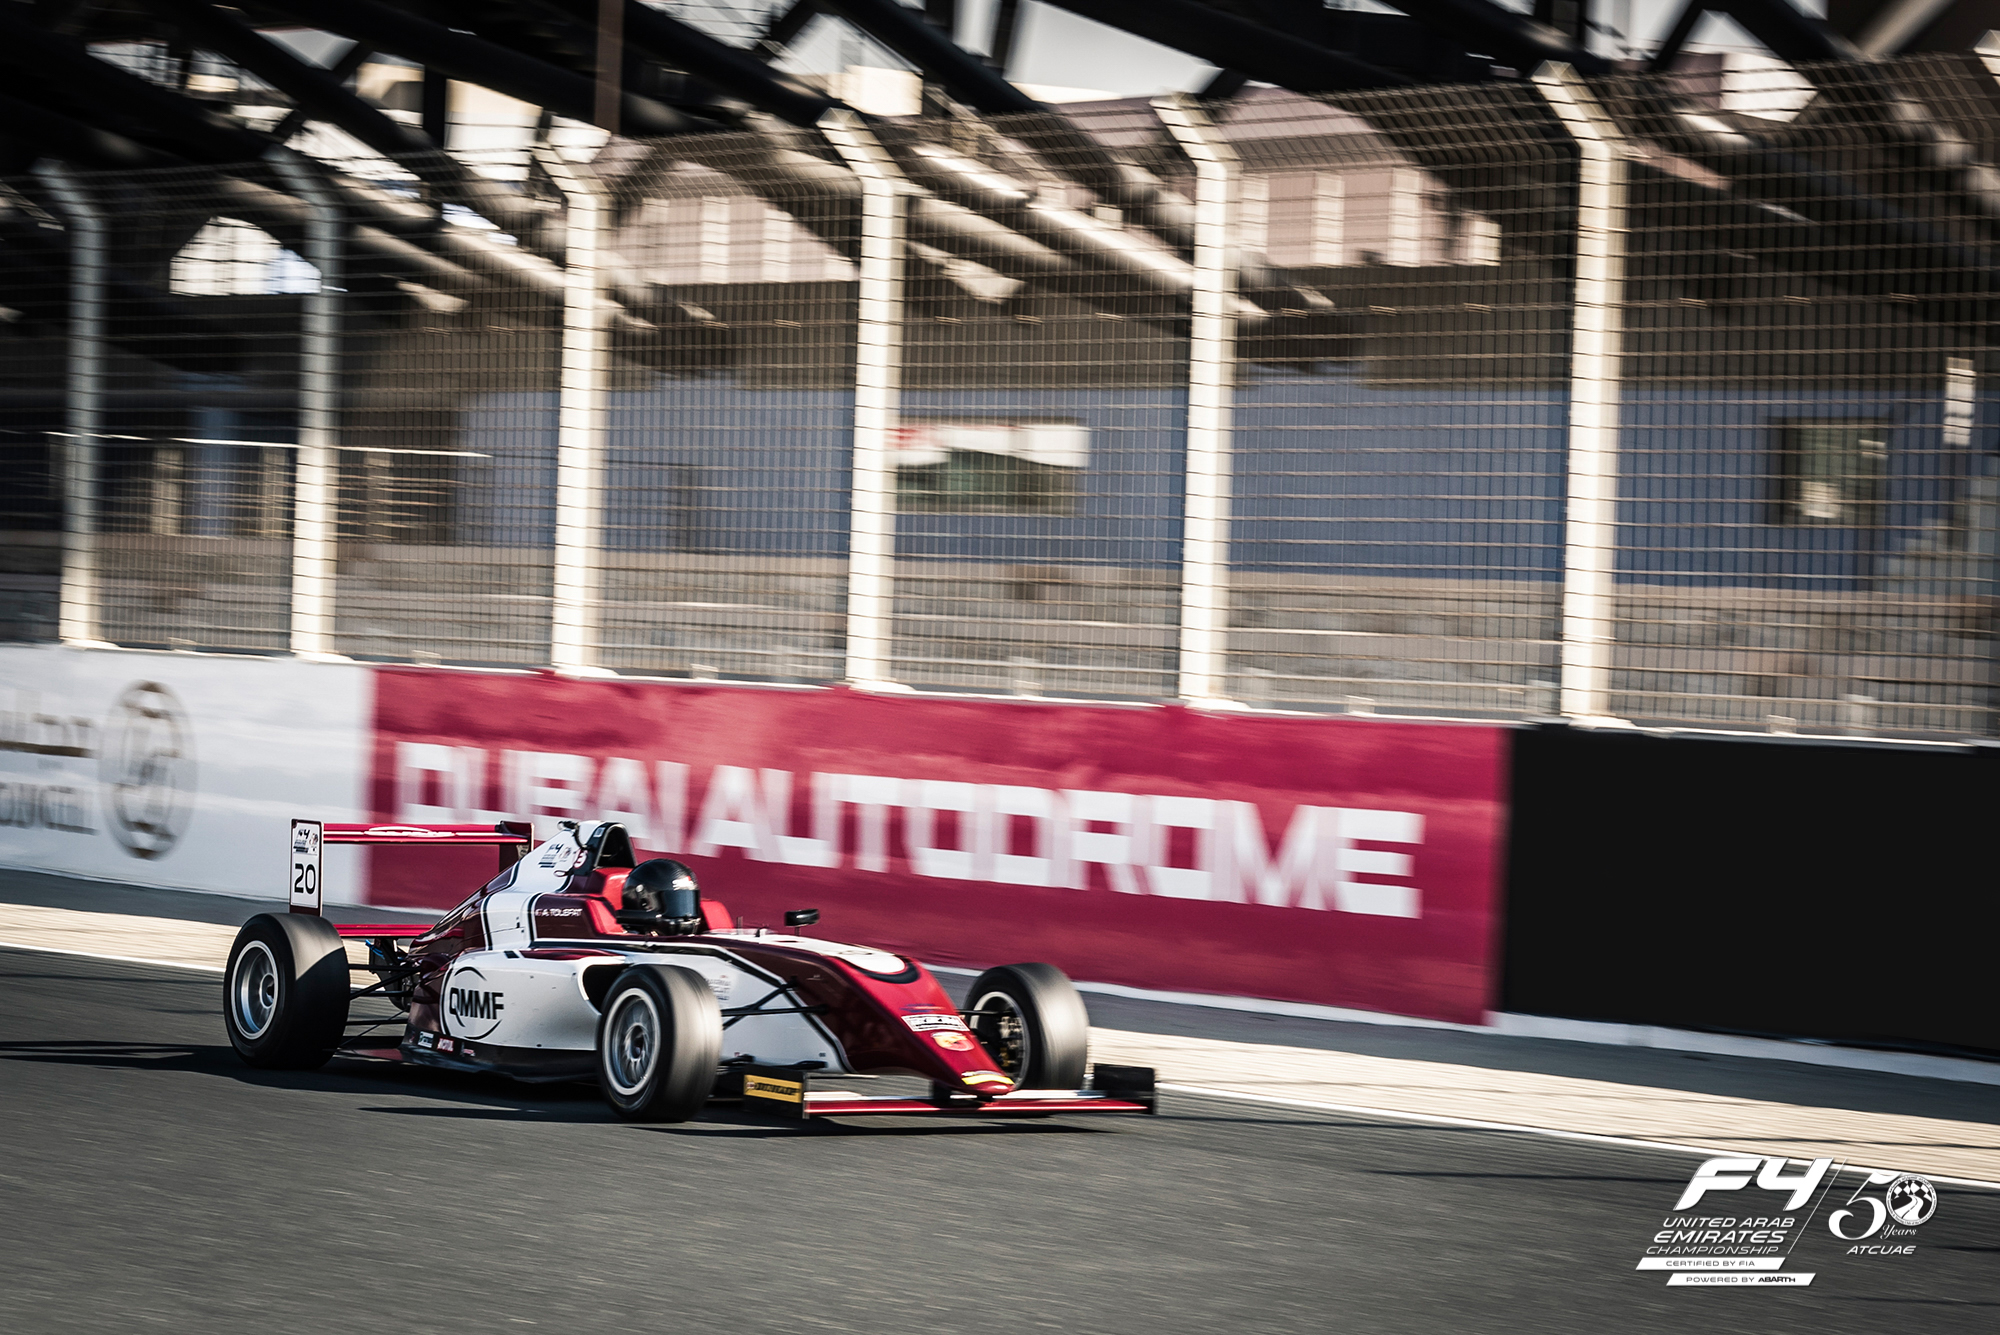 2016 10 30   Racing   Second Round   F4   Dubai    33 Of 34